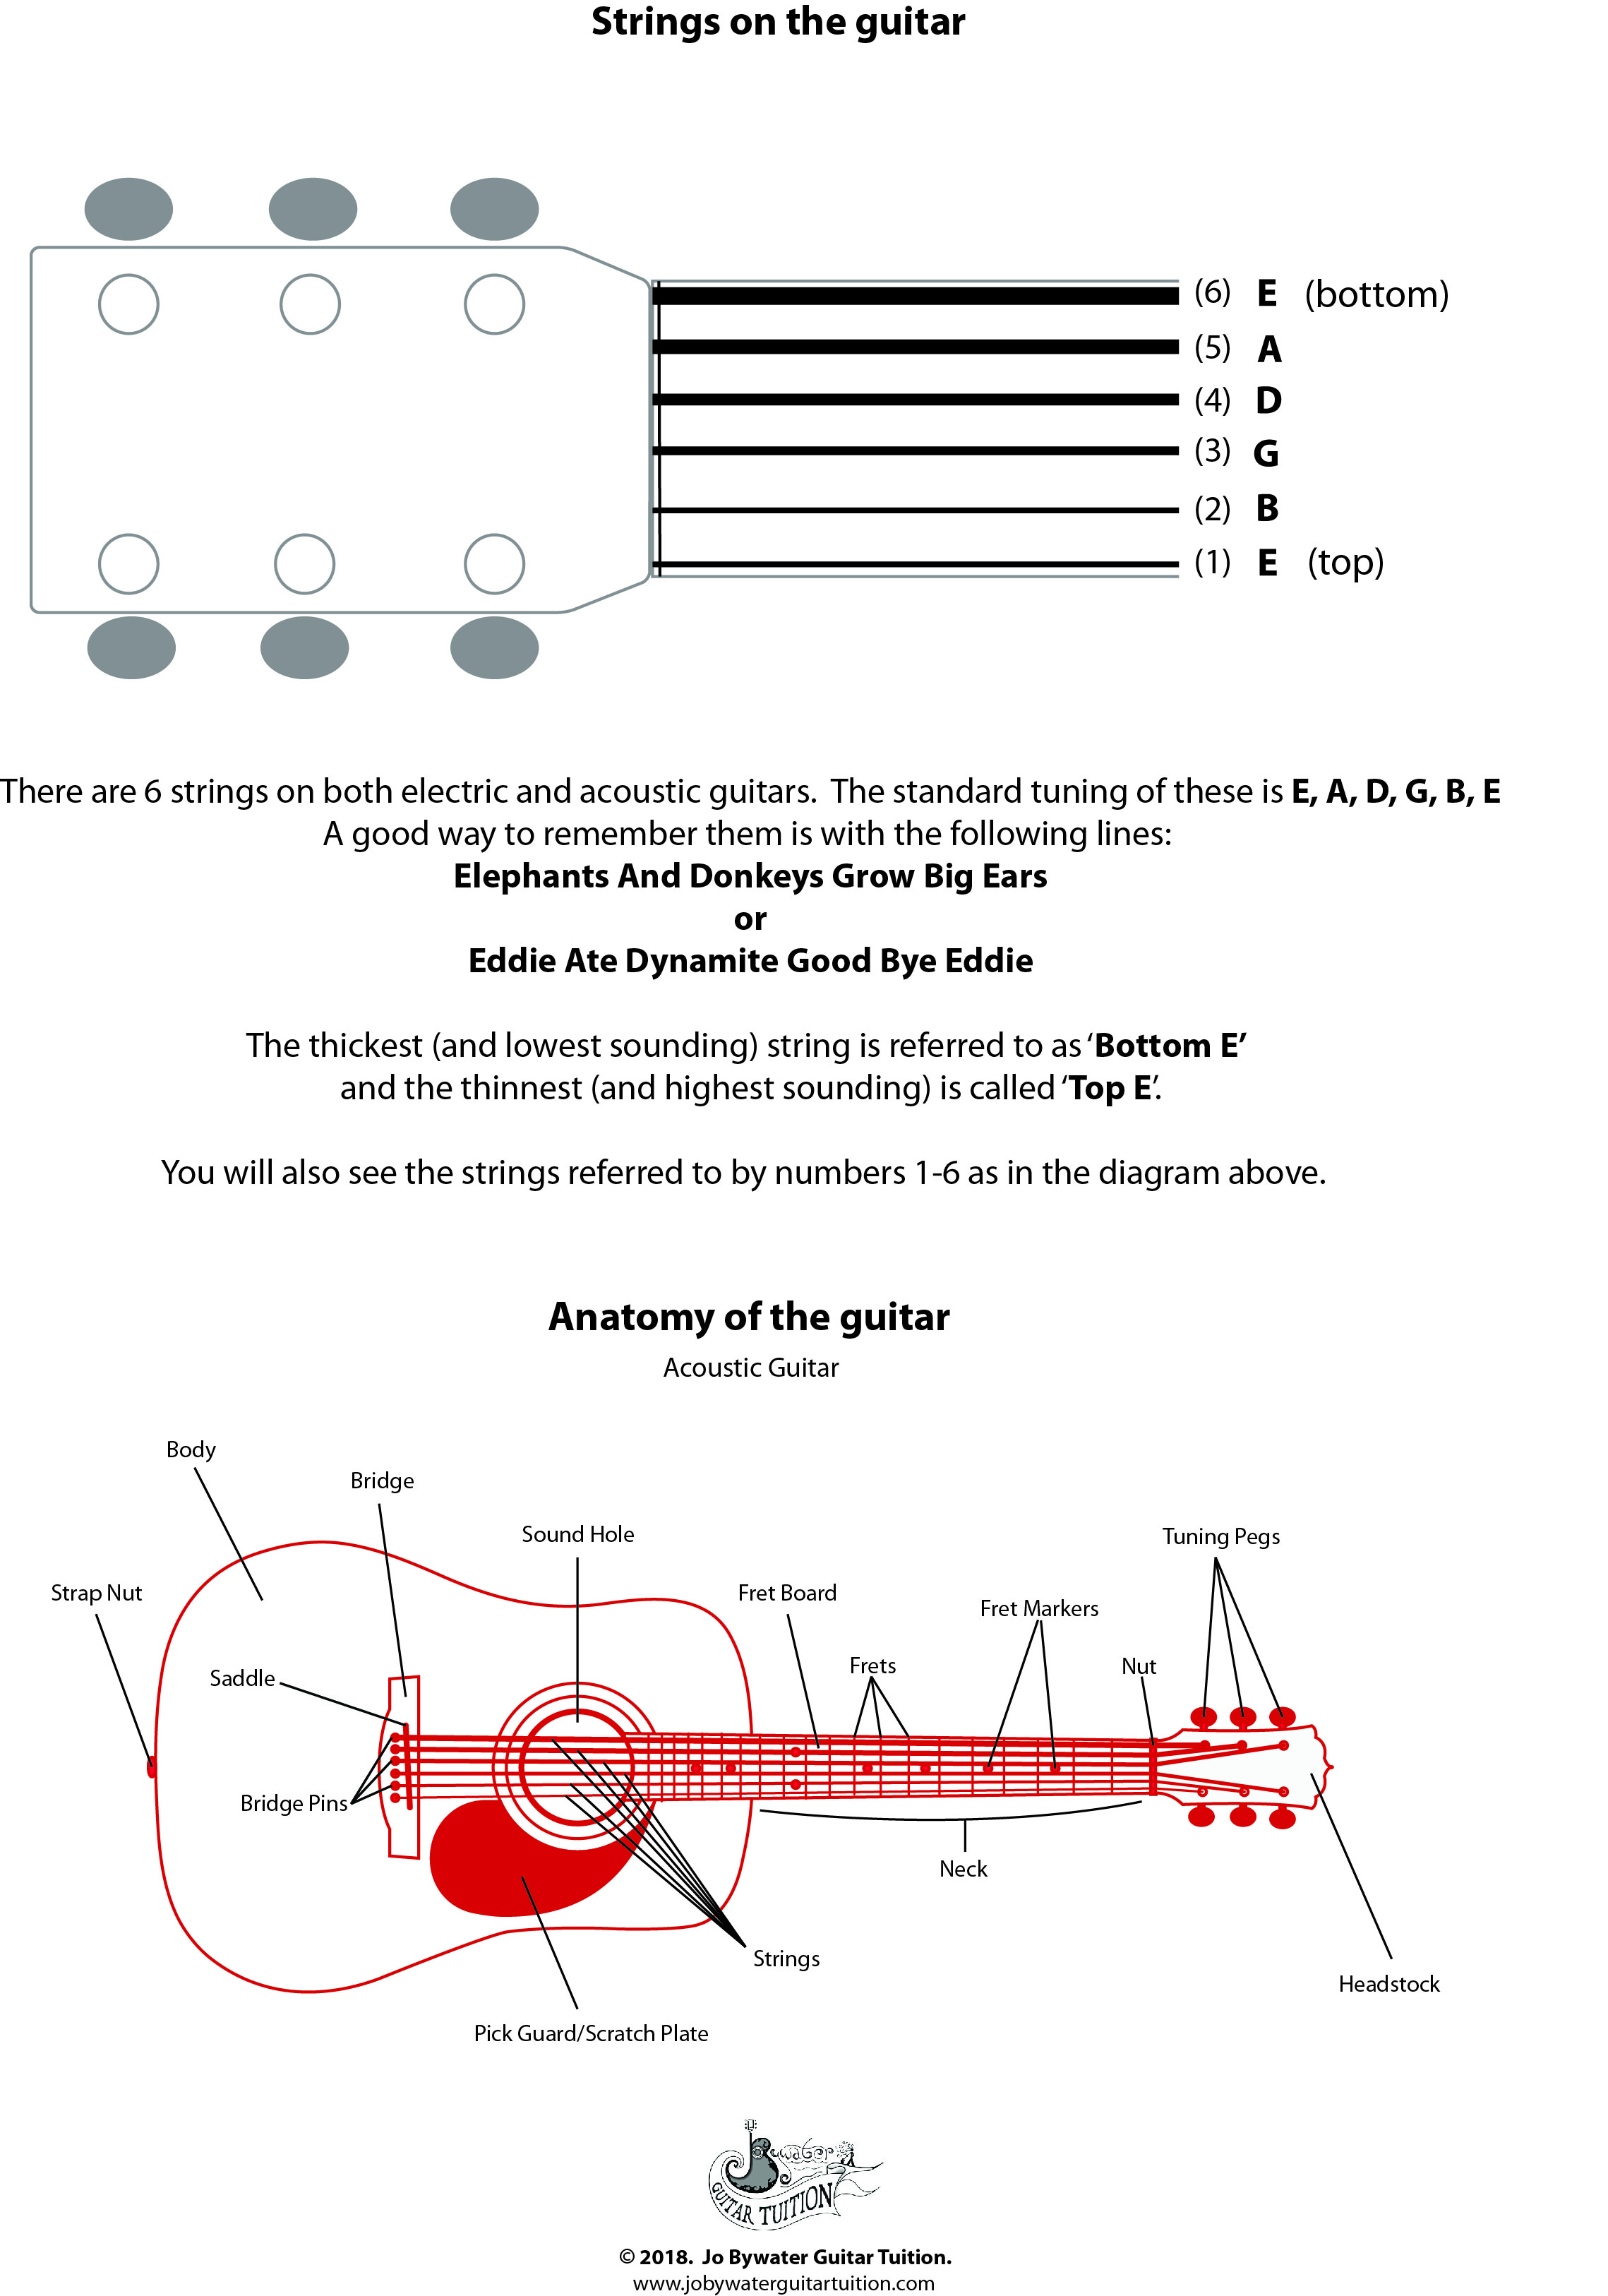 hight resolution of free resources jo bywater guitar tuition acoustic guitar labelled diagram jo bywater guitar tuition